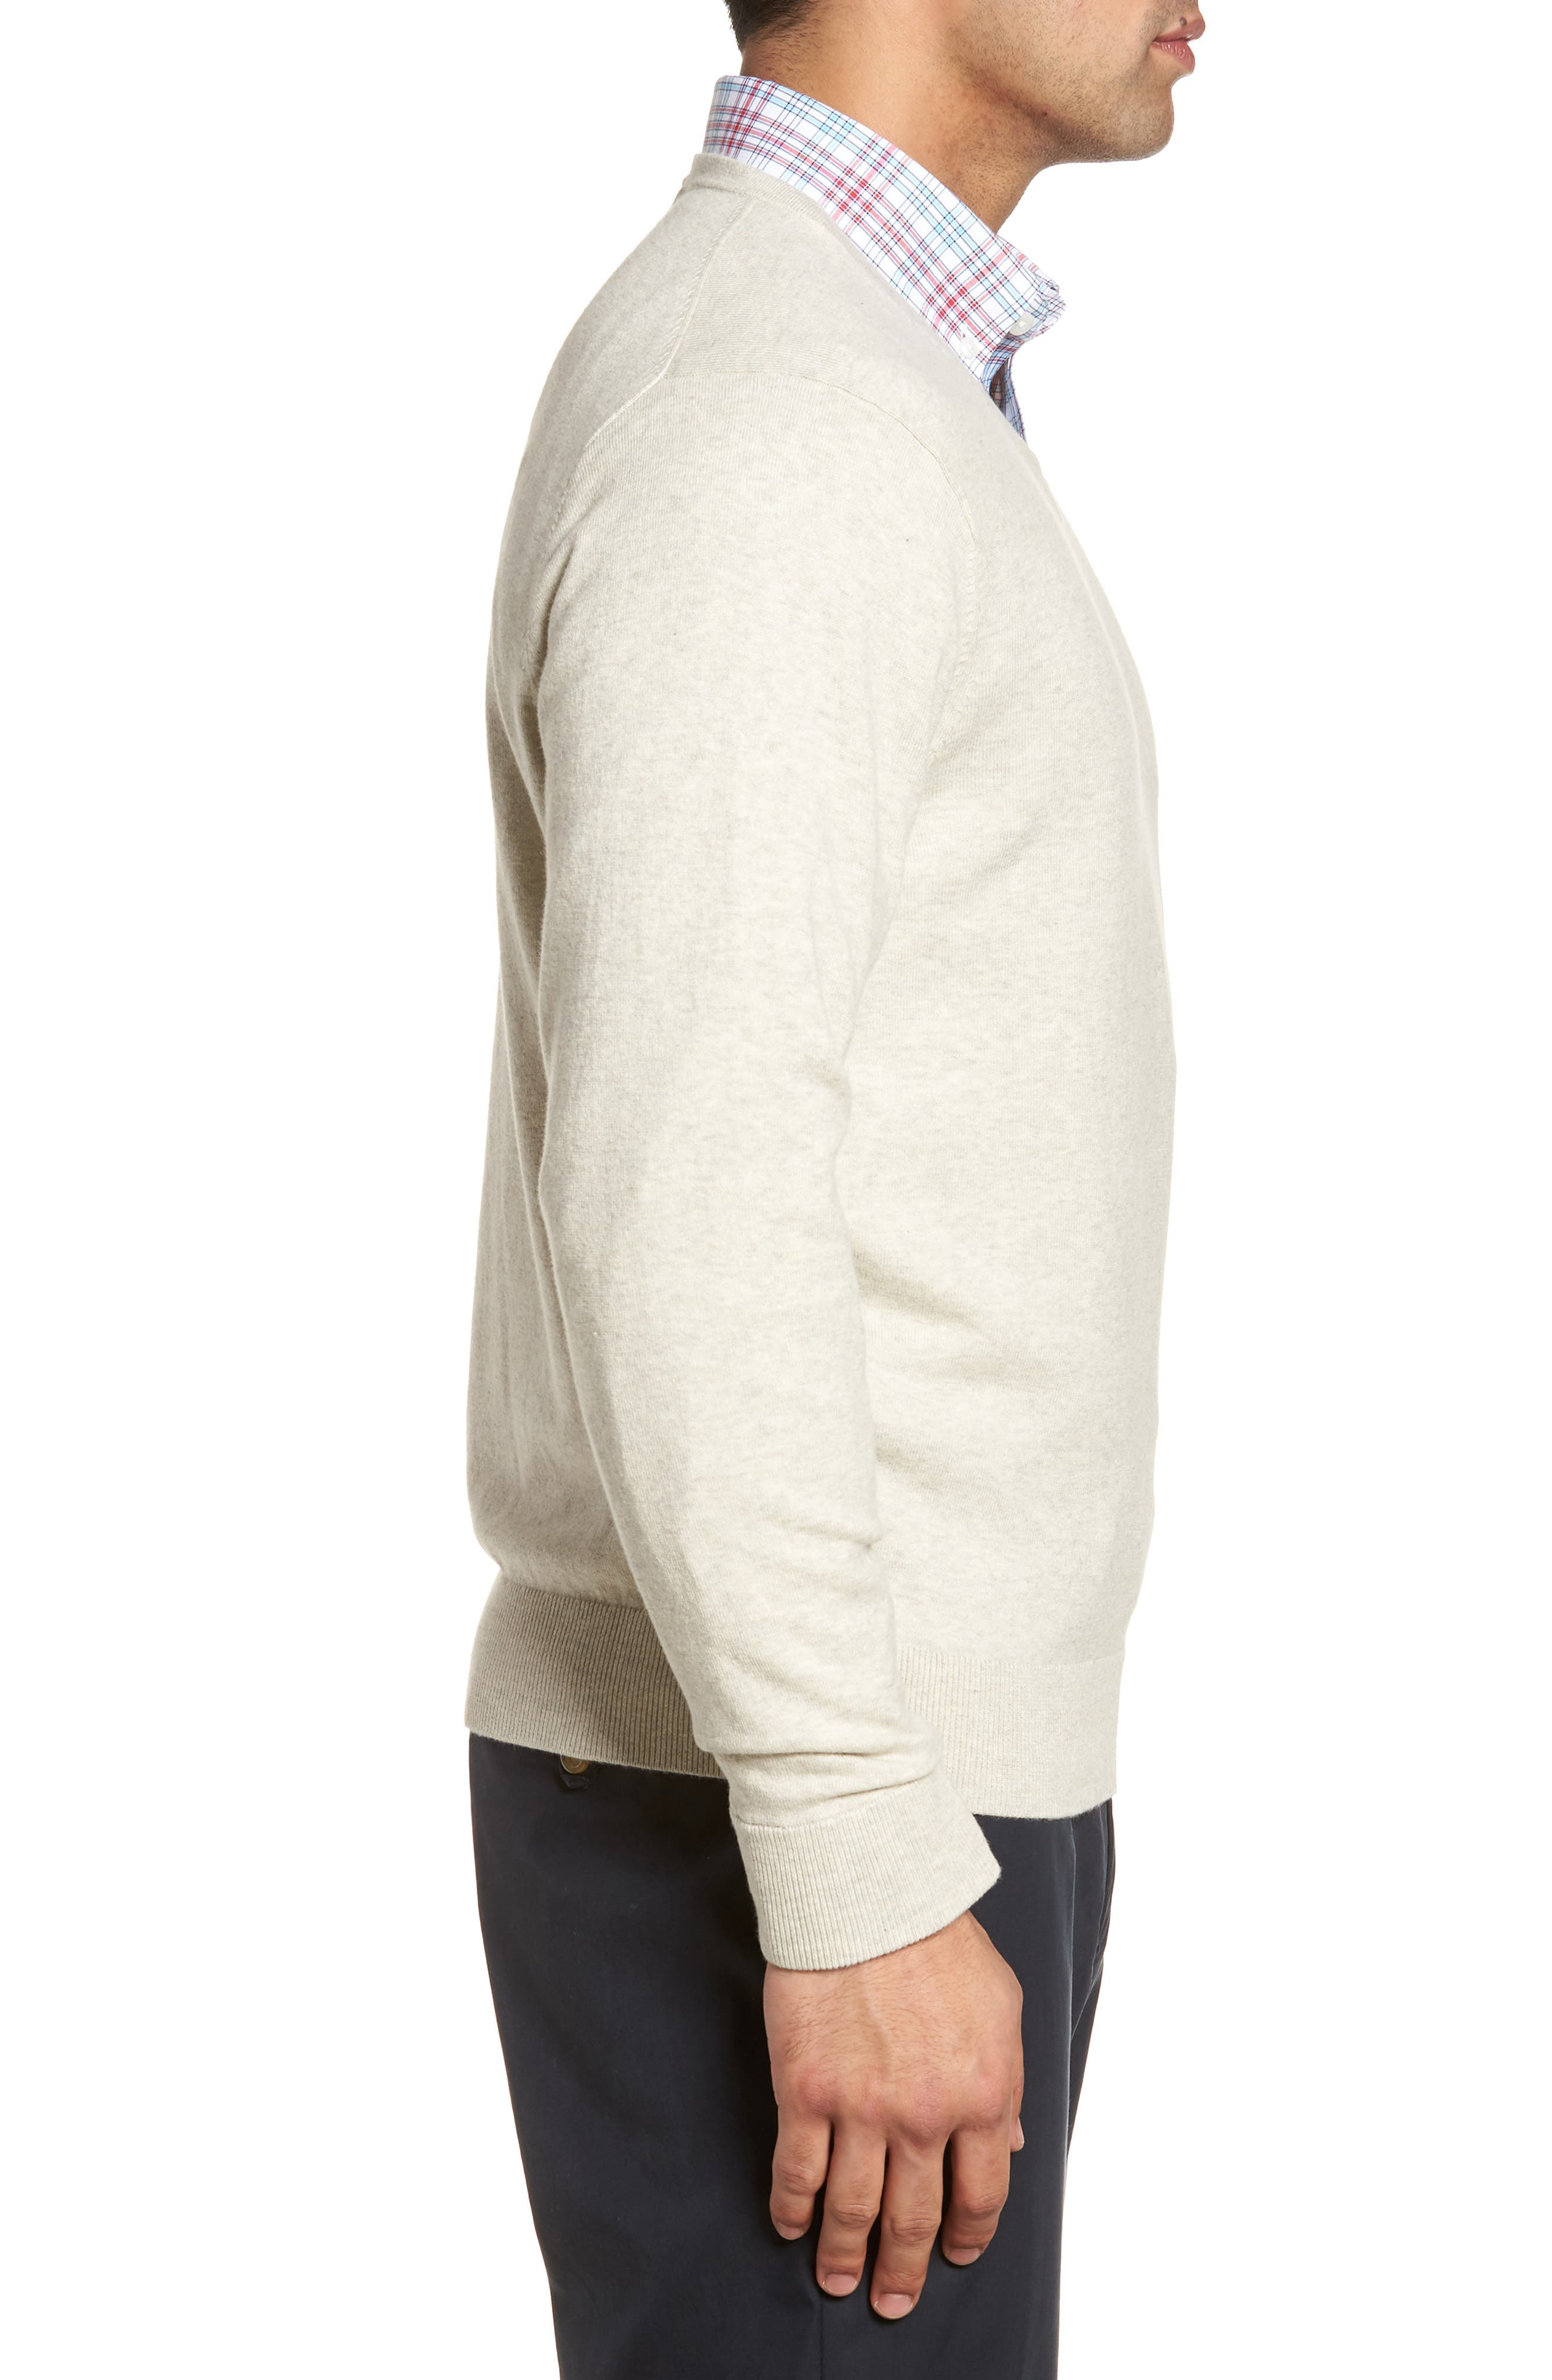 CUTTER & BUCK, Lakemont Classic Fit V-Neck Sweater, Alternate thumbnail 3, color, OATMEAL HEATHER